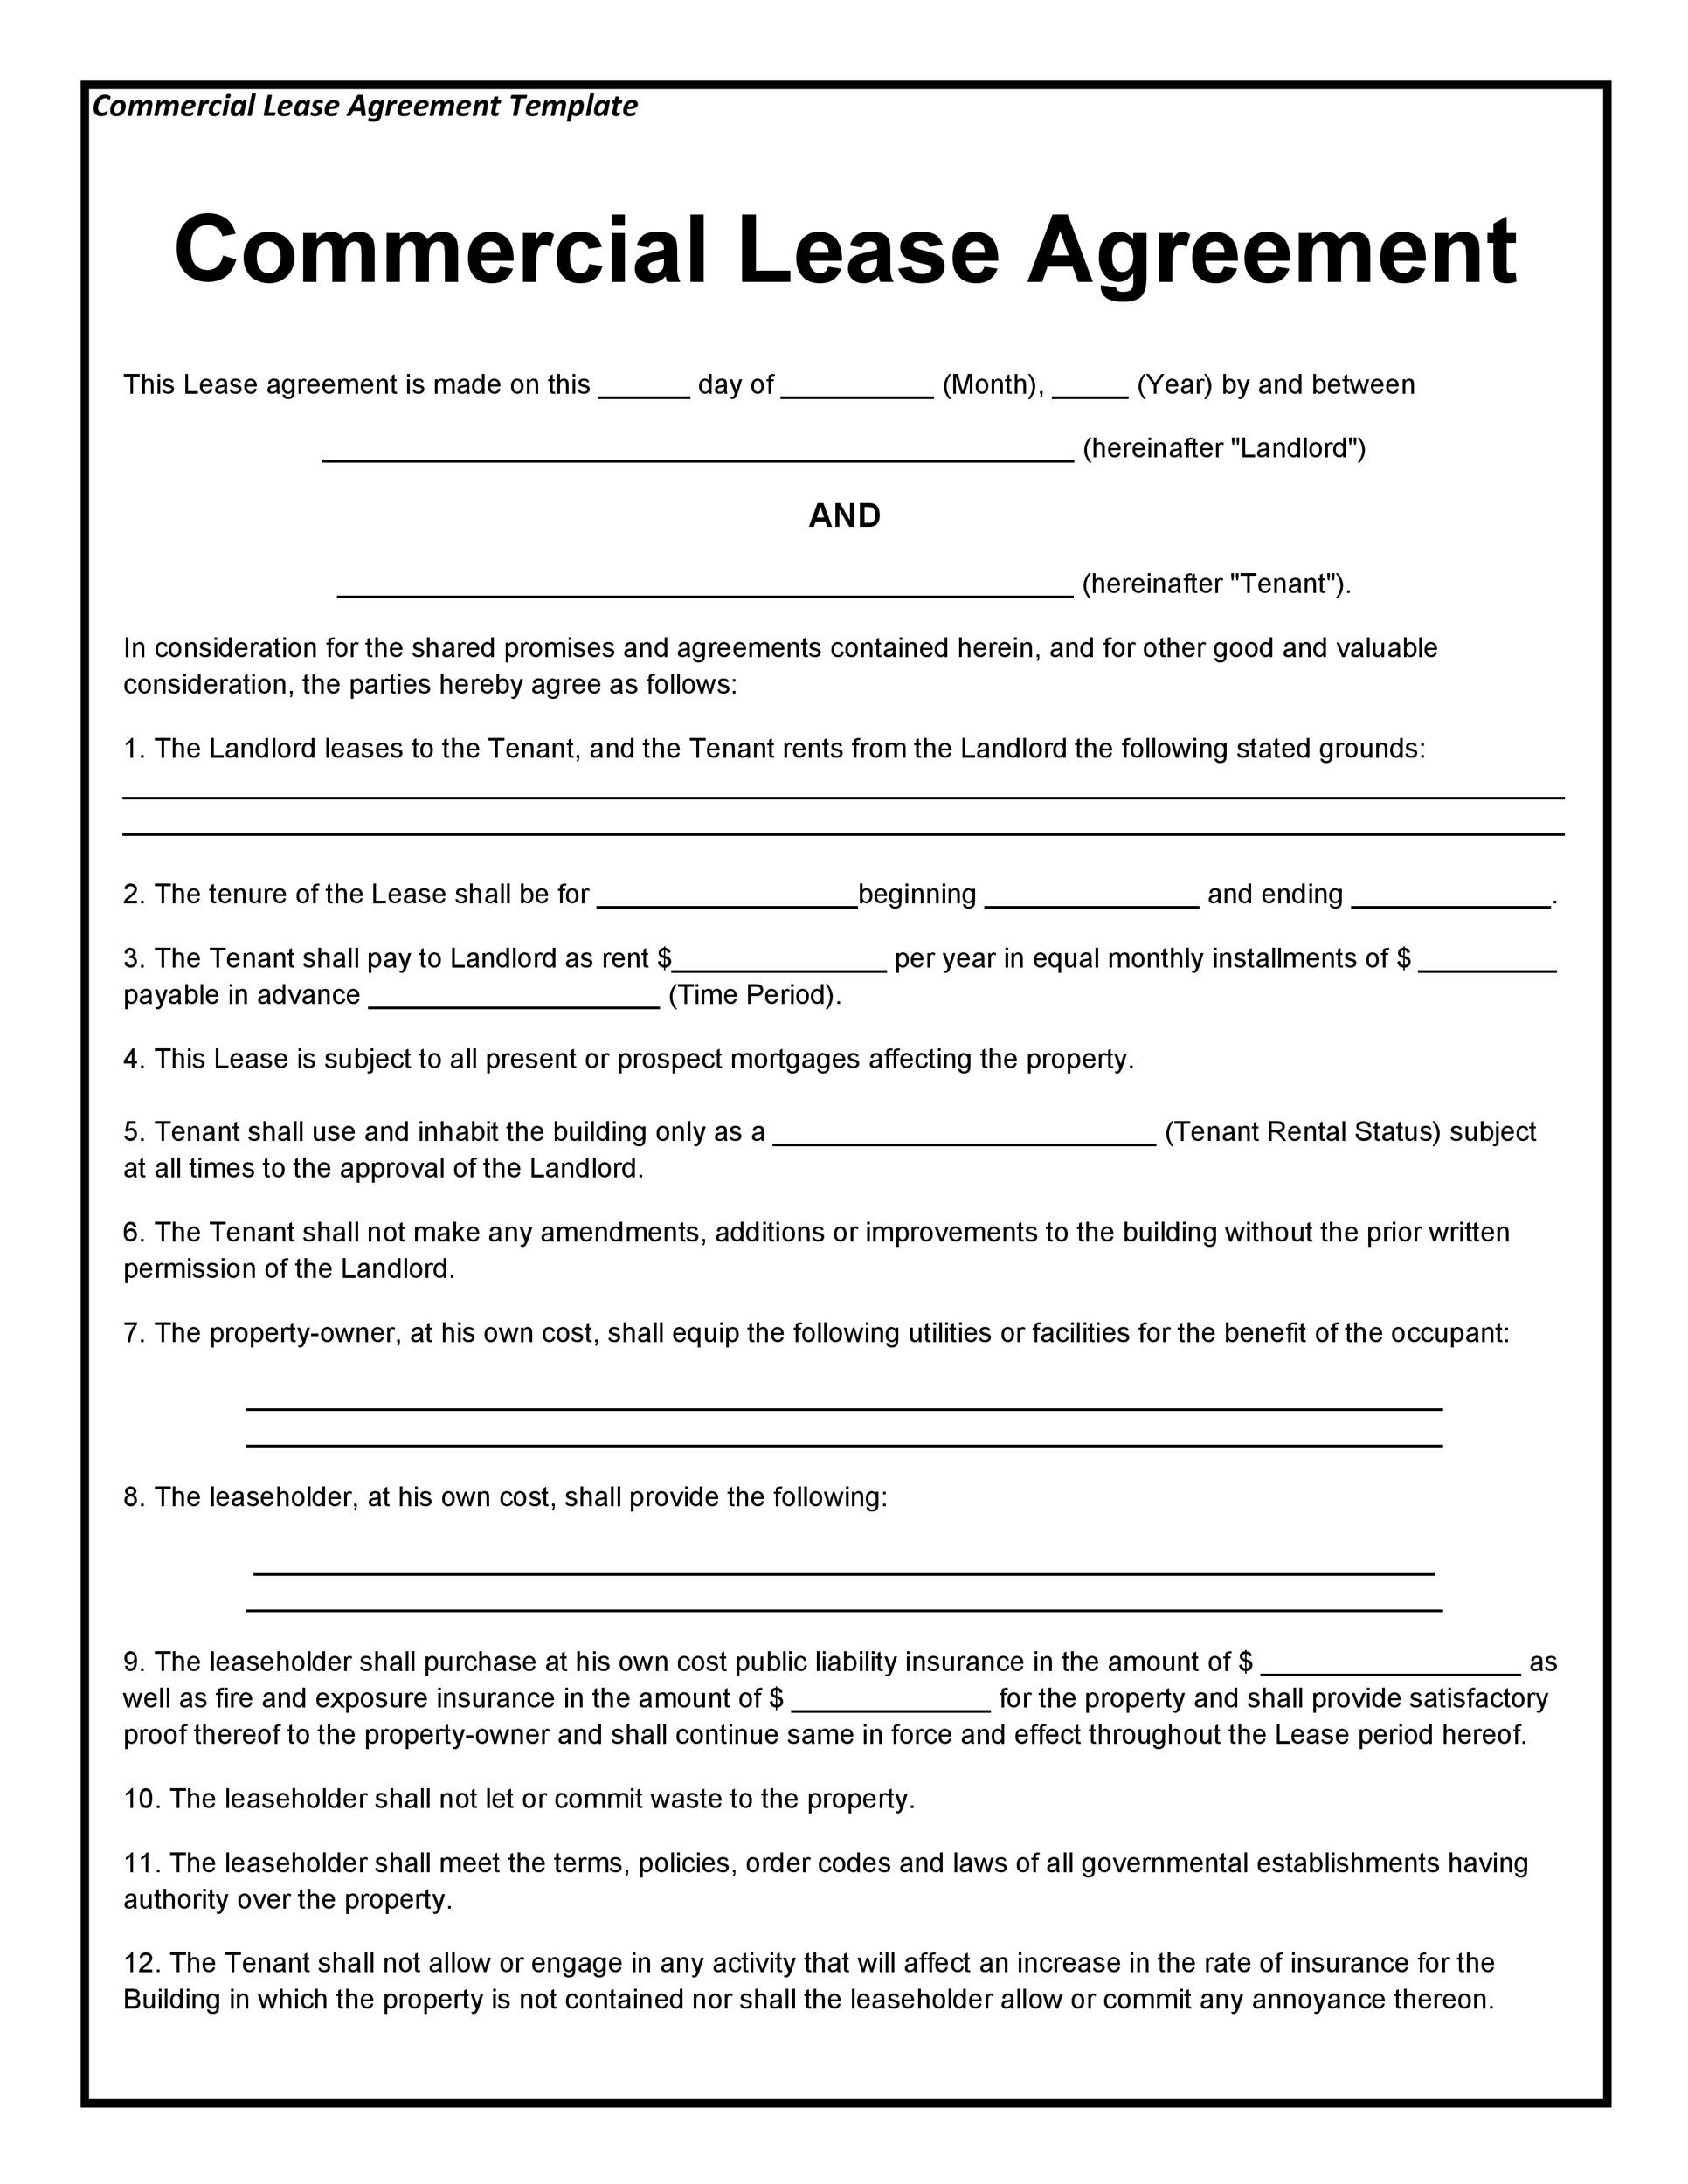 Use residential rental lease agreement in california to showcase the conditions between a landlord and a tenant leasing a commercial or residential. 26 Free Commercial Lease Agreement Templates Á… Templatelab